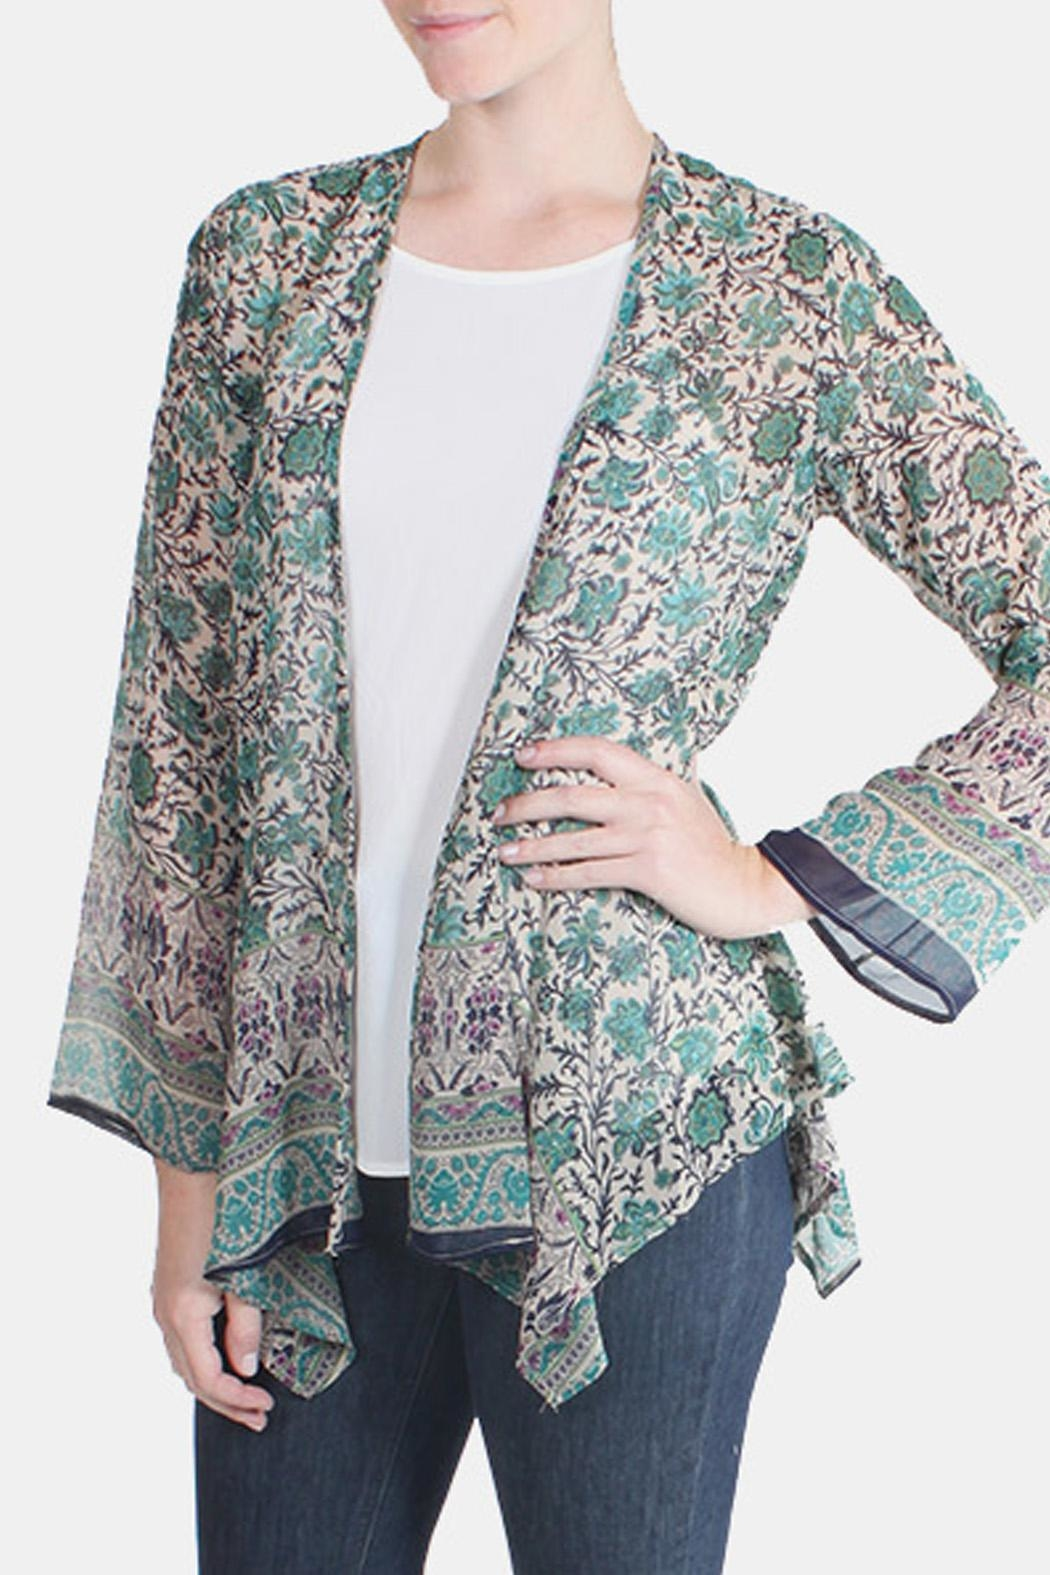 Chris & Carol Teal Kimono-Cardigan from Los Angeles by Goldie's ...